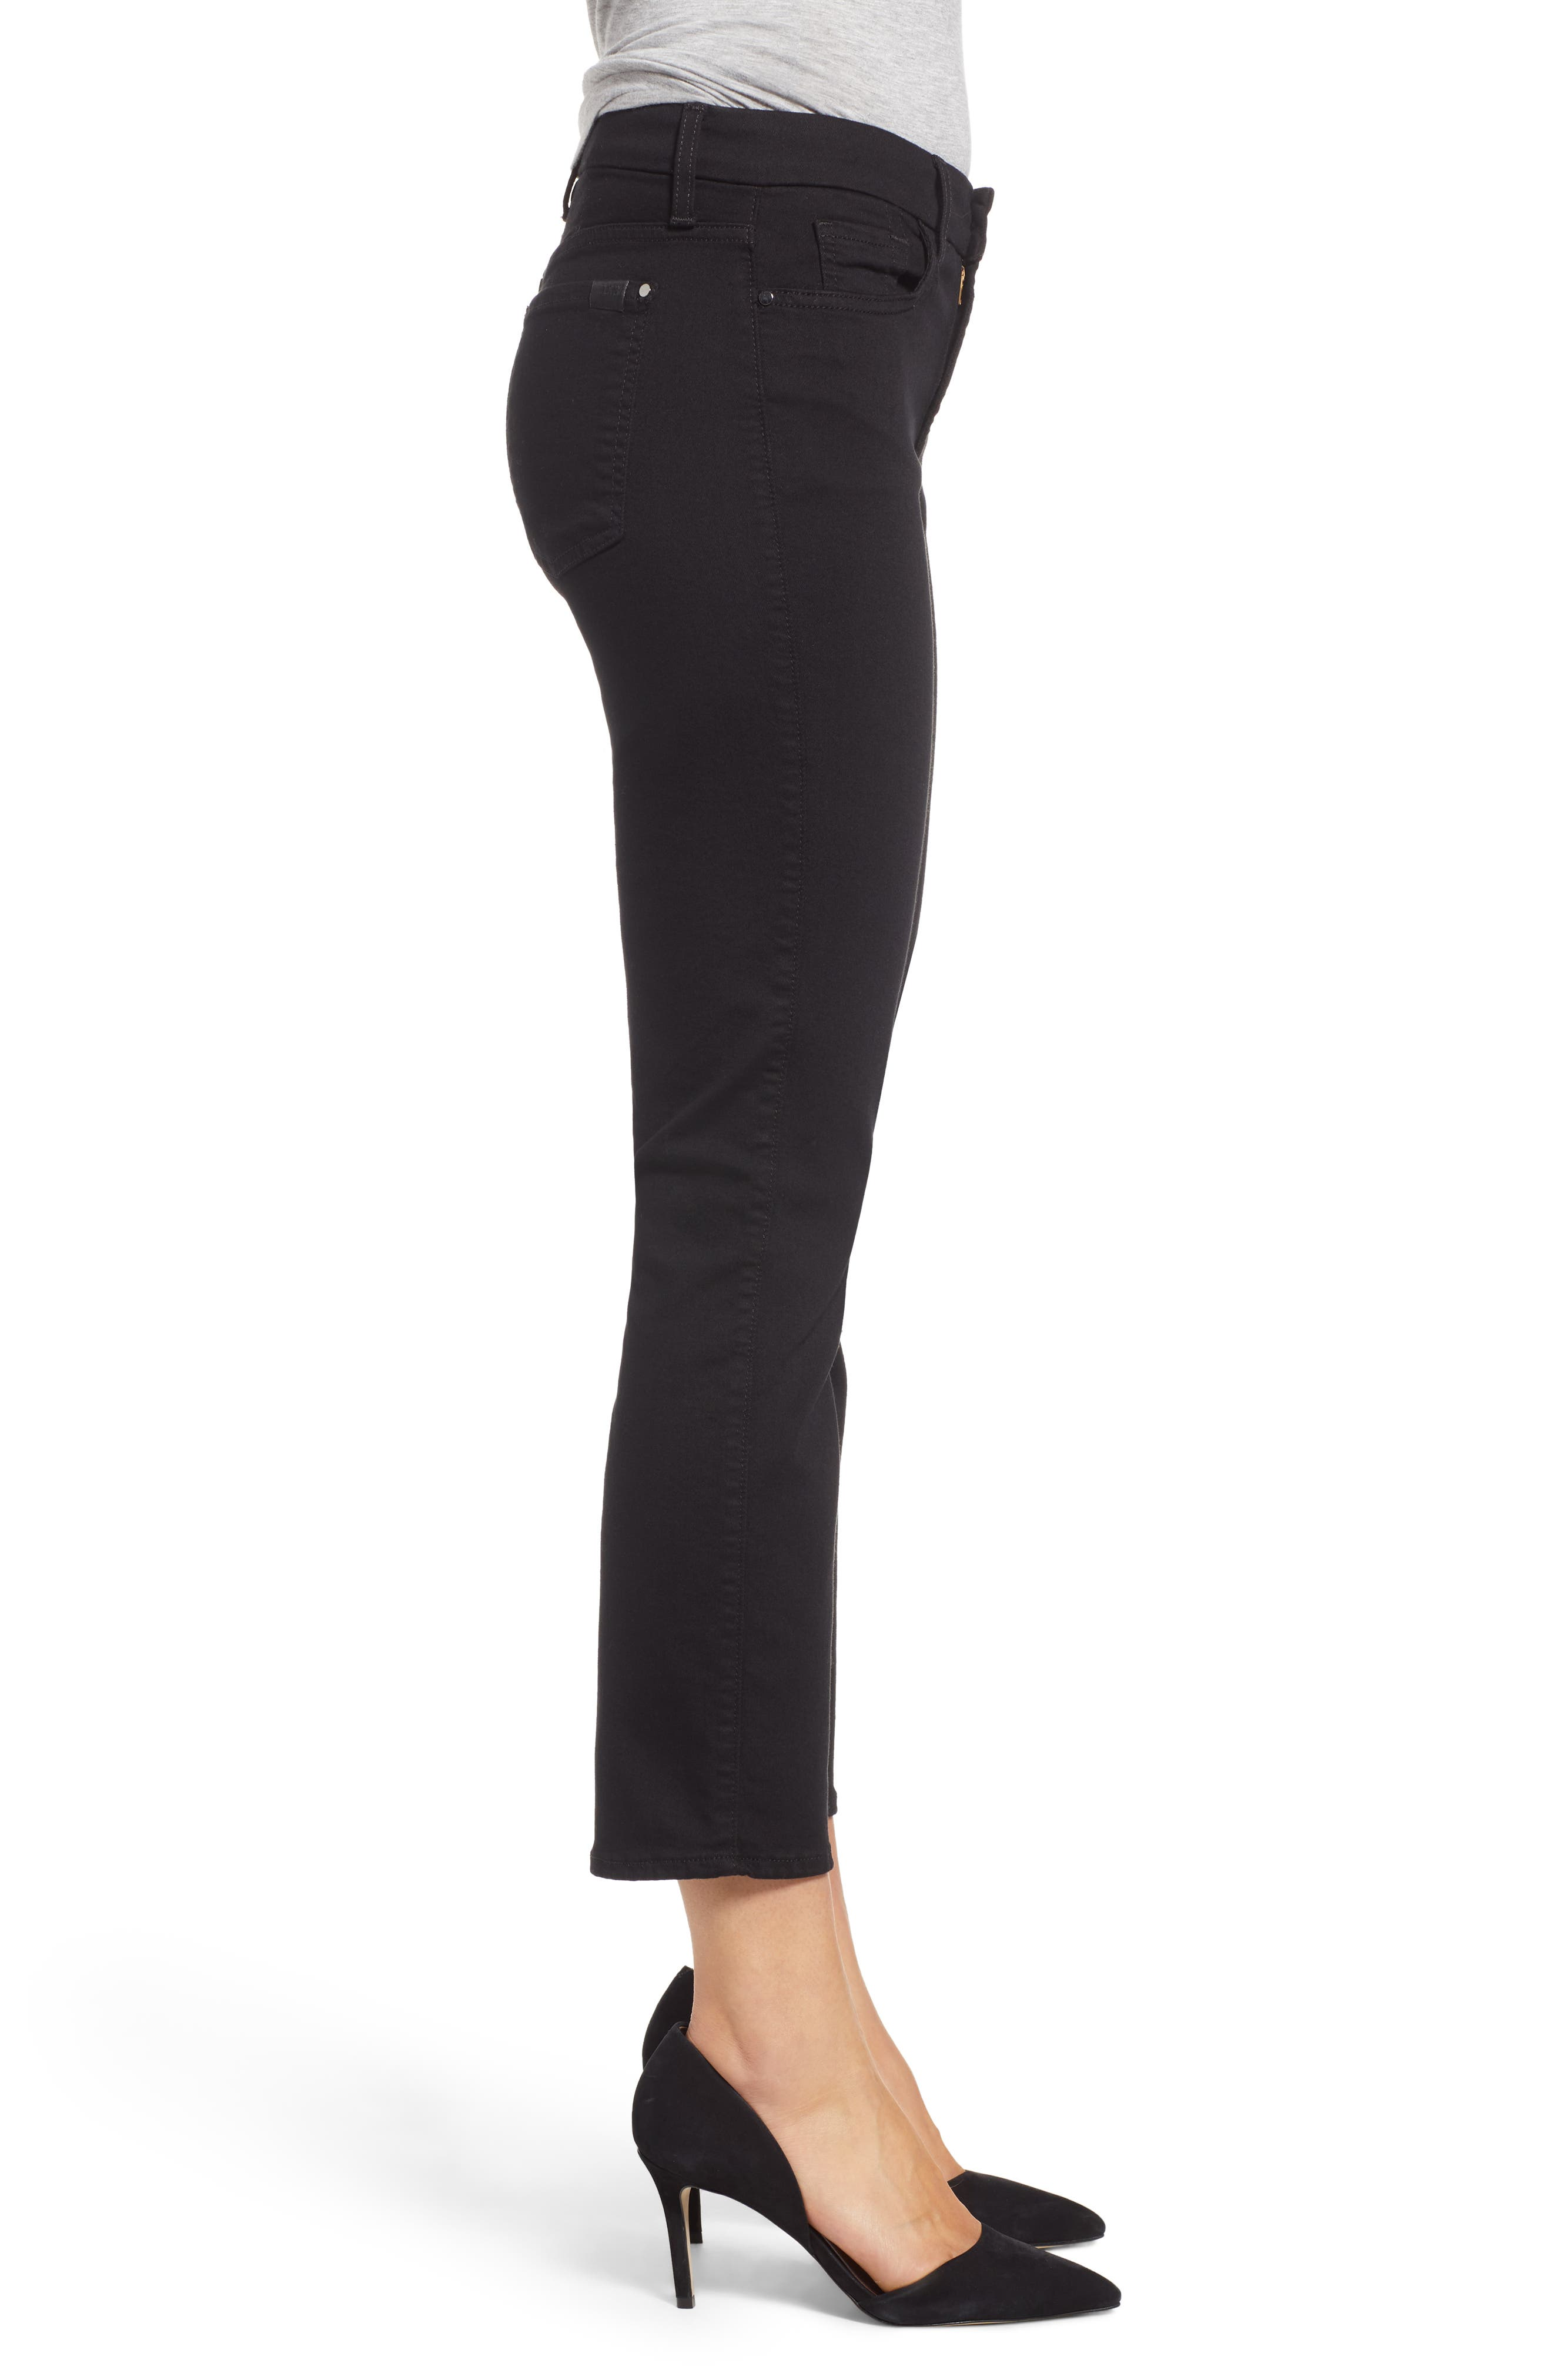 JEN7 BY 7 FOR ALL MANKIND, Stretch Crop Straight Leg Jeans, Alternate thumbnail 3, color, BLACK